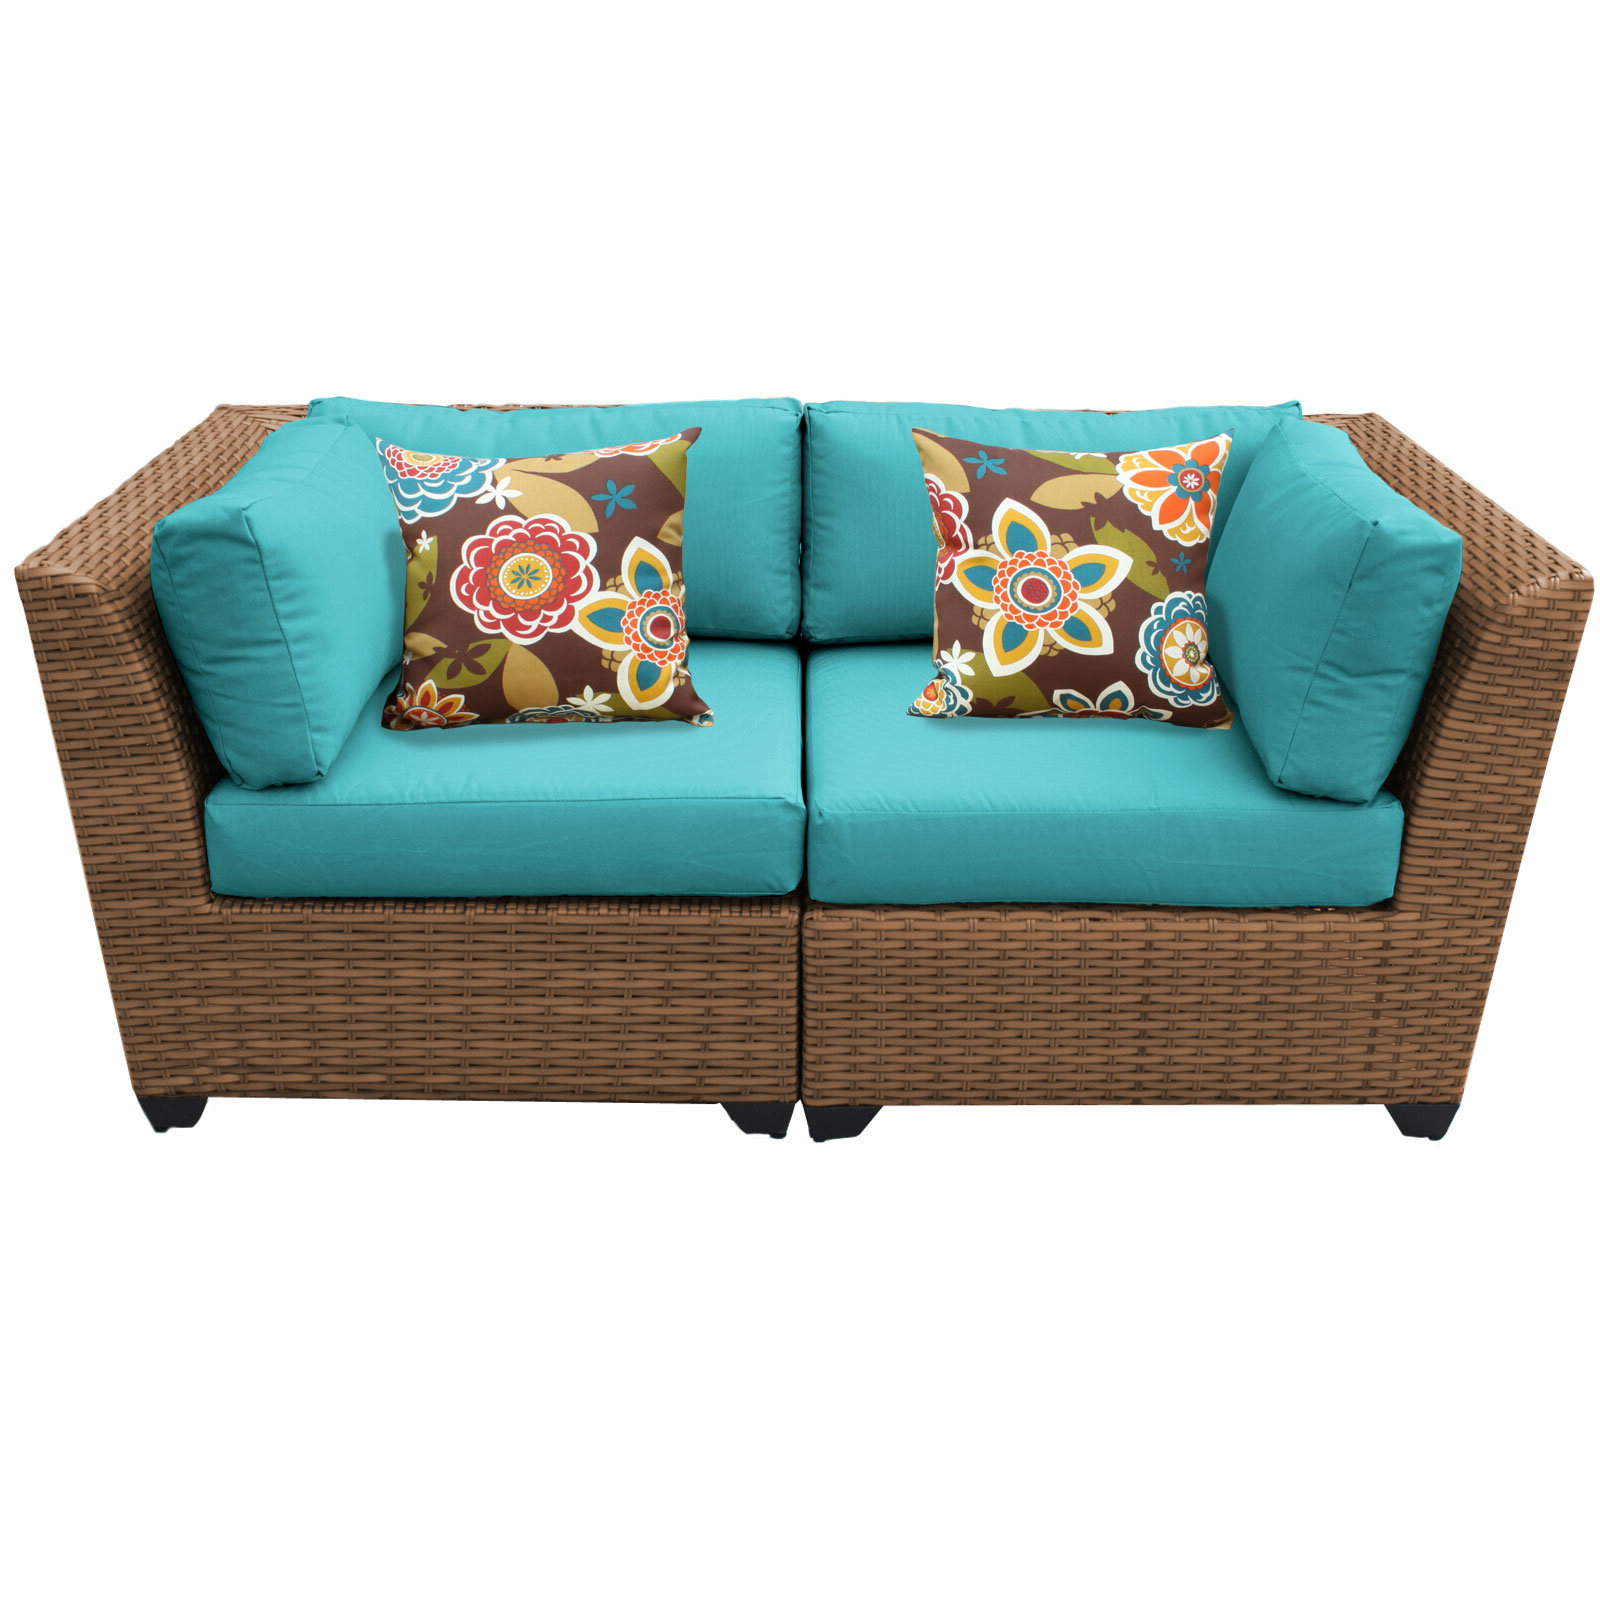 Well Known Waterbury Curved Armless Sofa With Cushions In Waterbury Corner Sofa With Cushions (View 18 of 20)